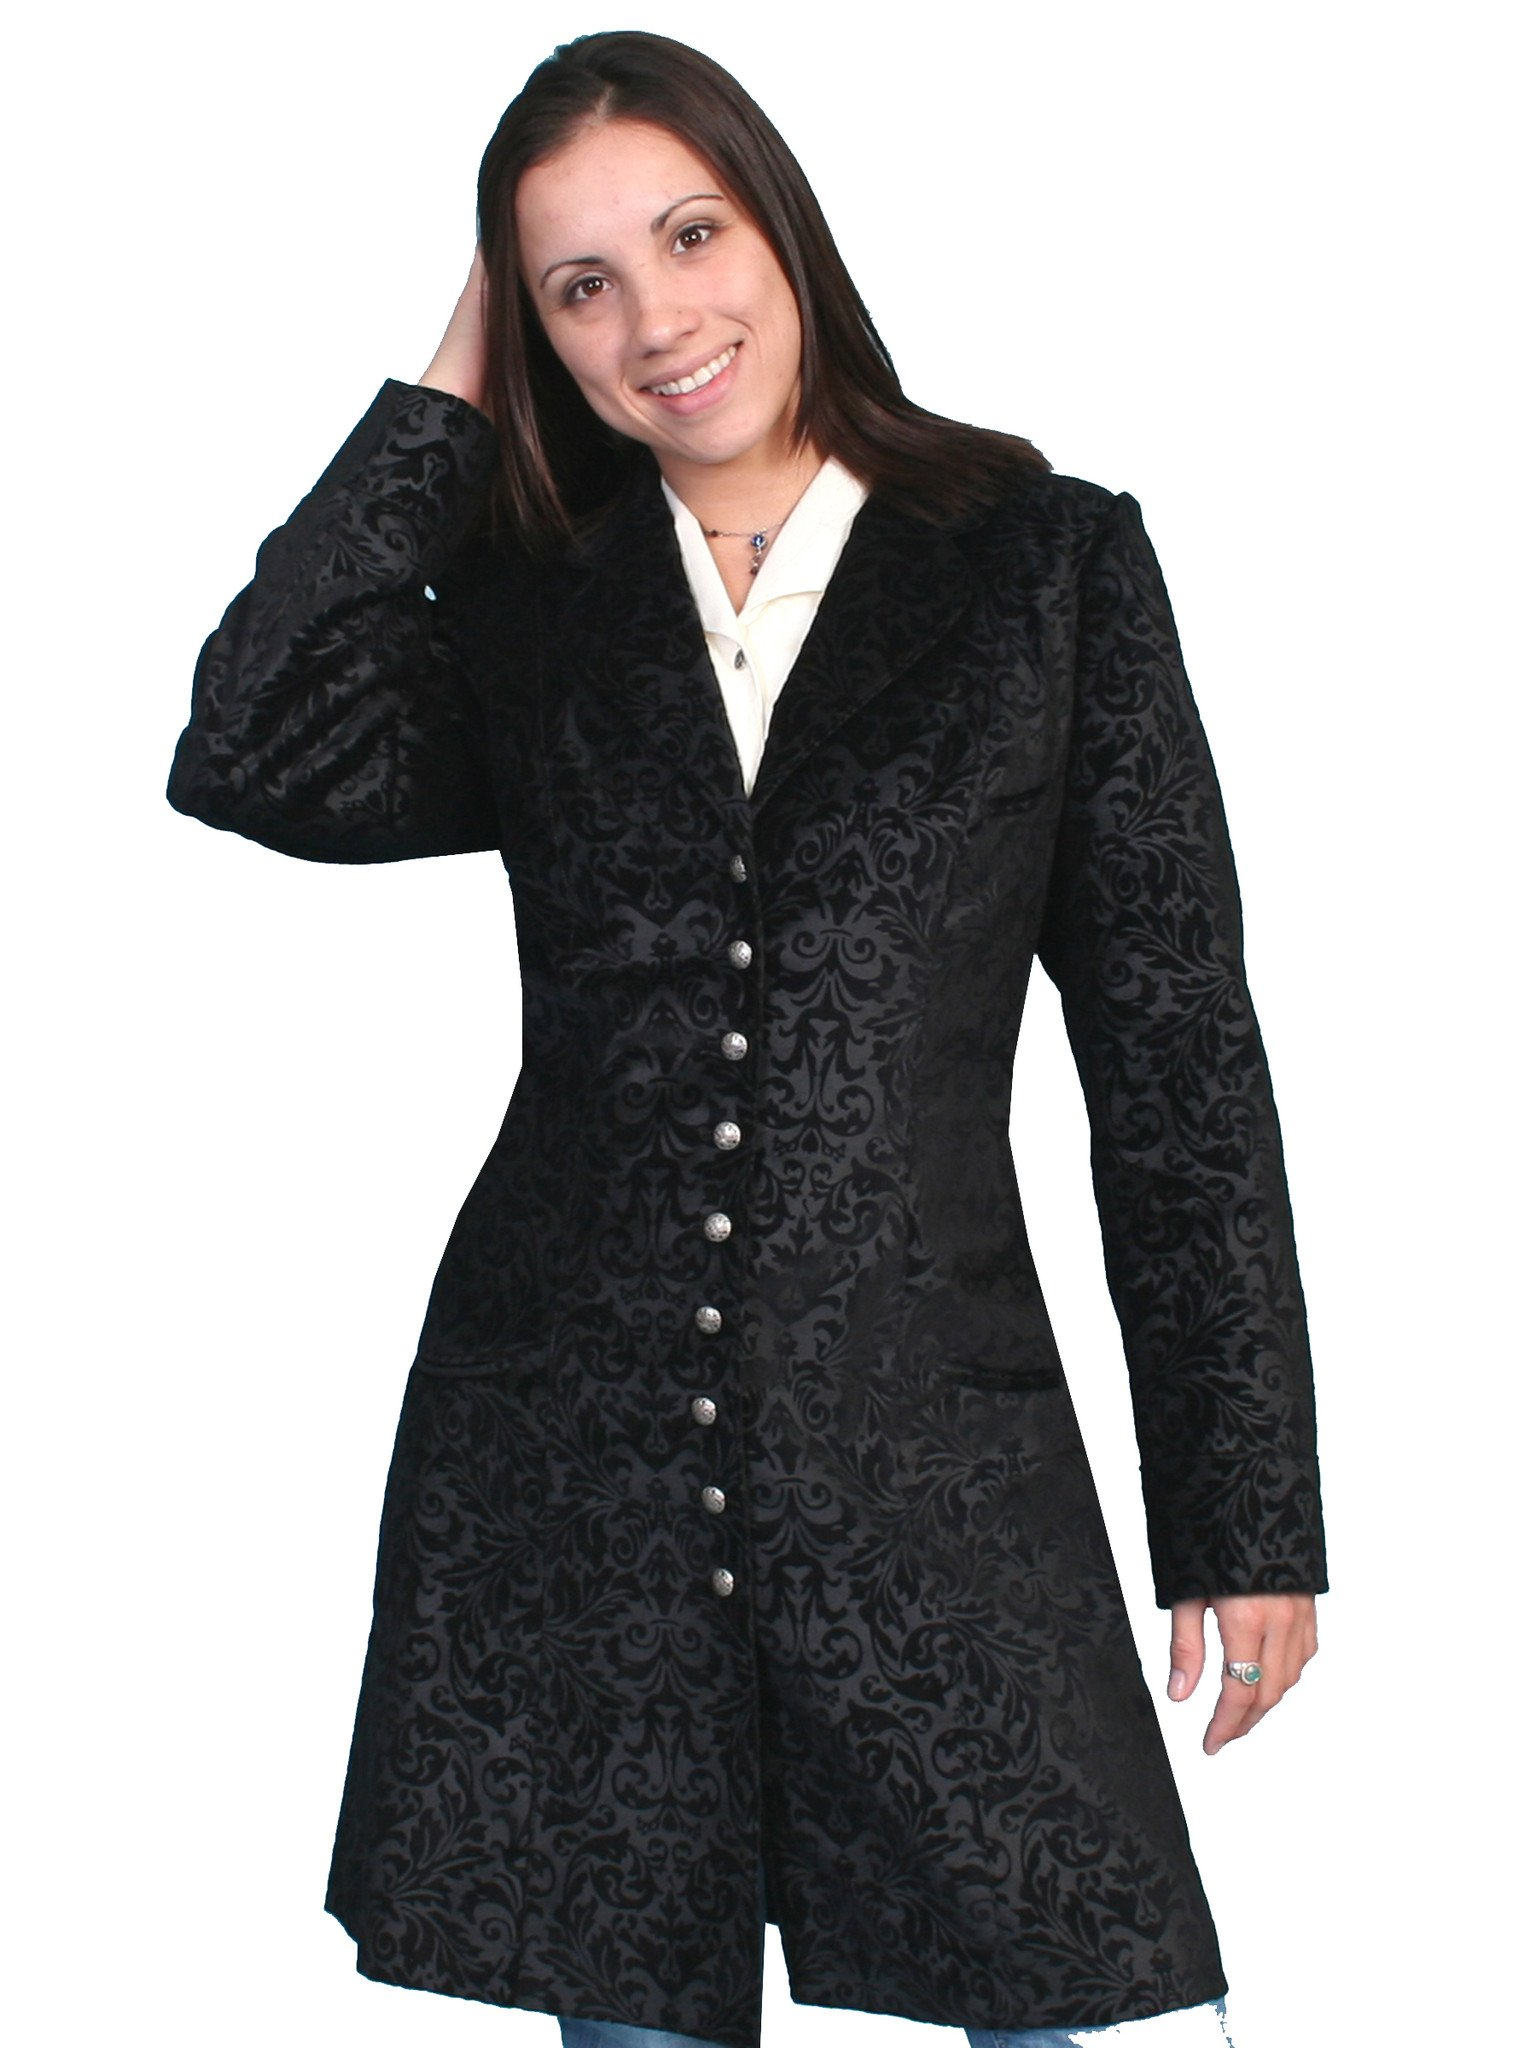 Ladies frock coat – a classic of the fashion world